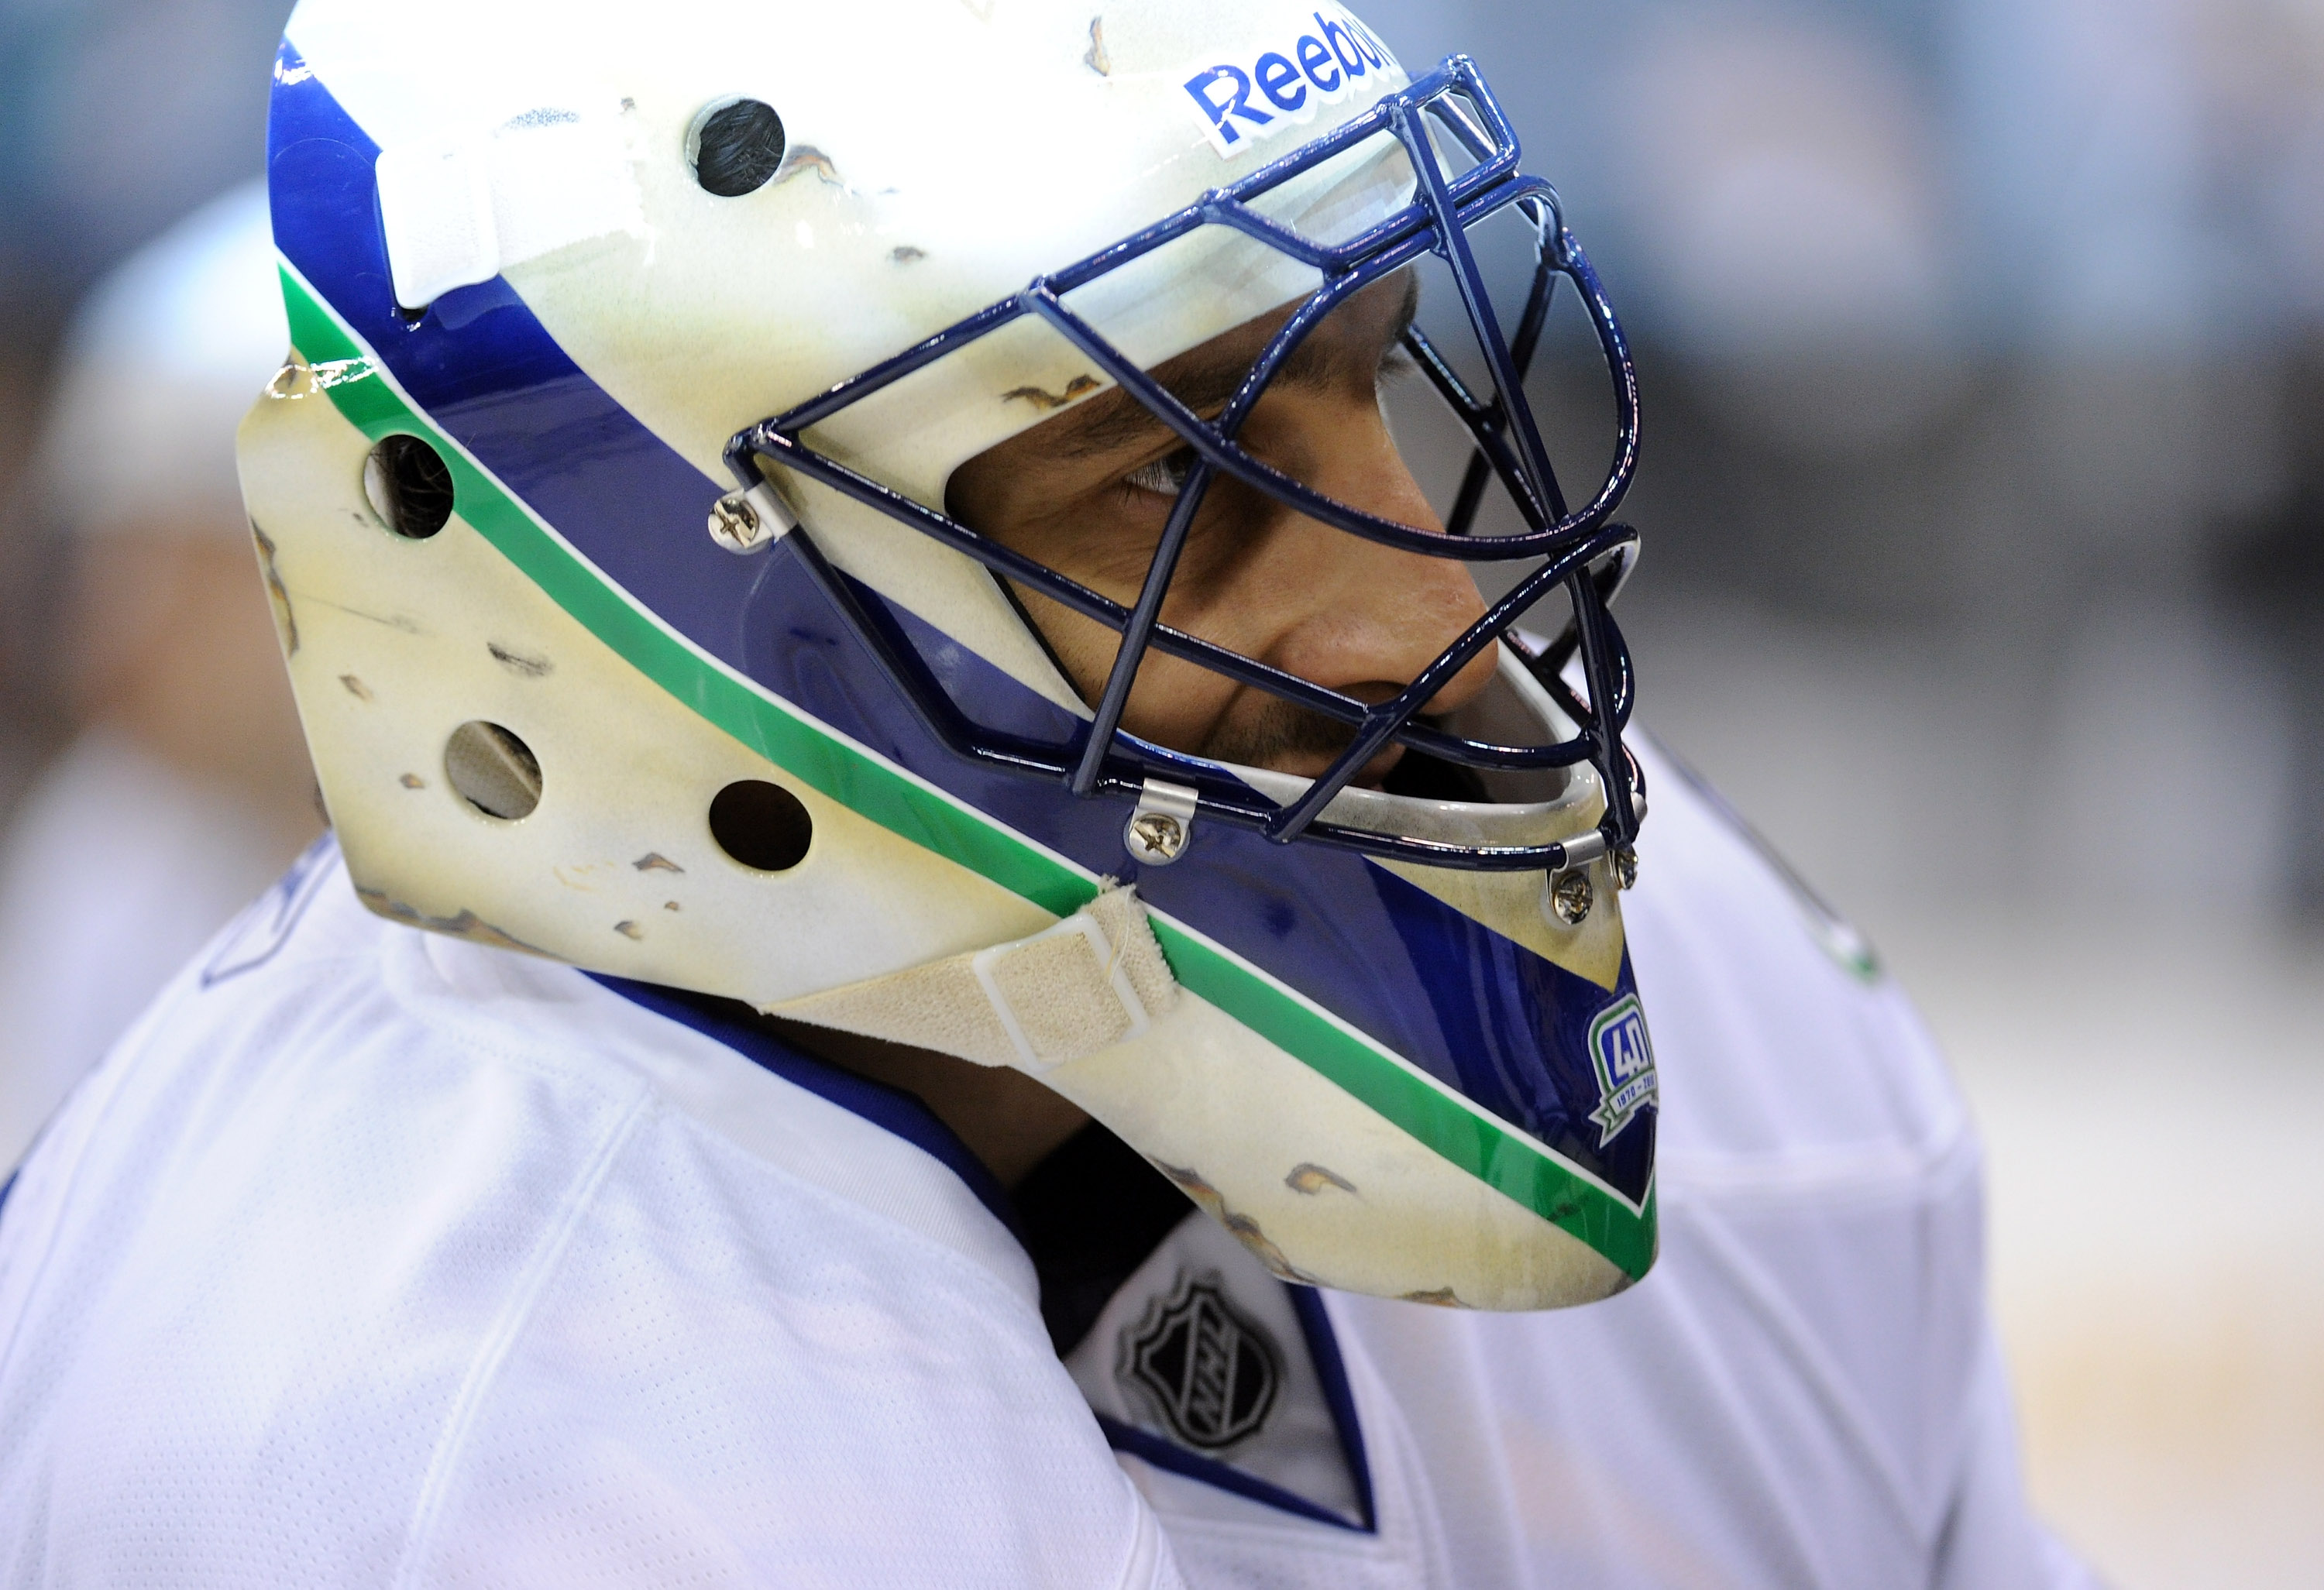 Nhl Ranking The Top Goalie Masks Bleacher Report Latest News